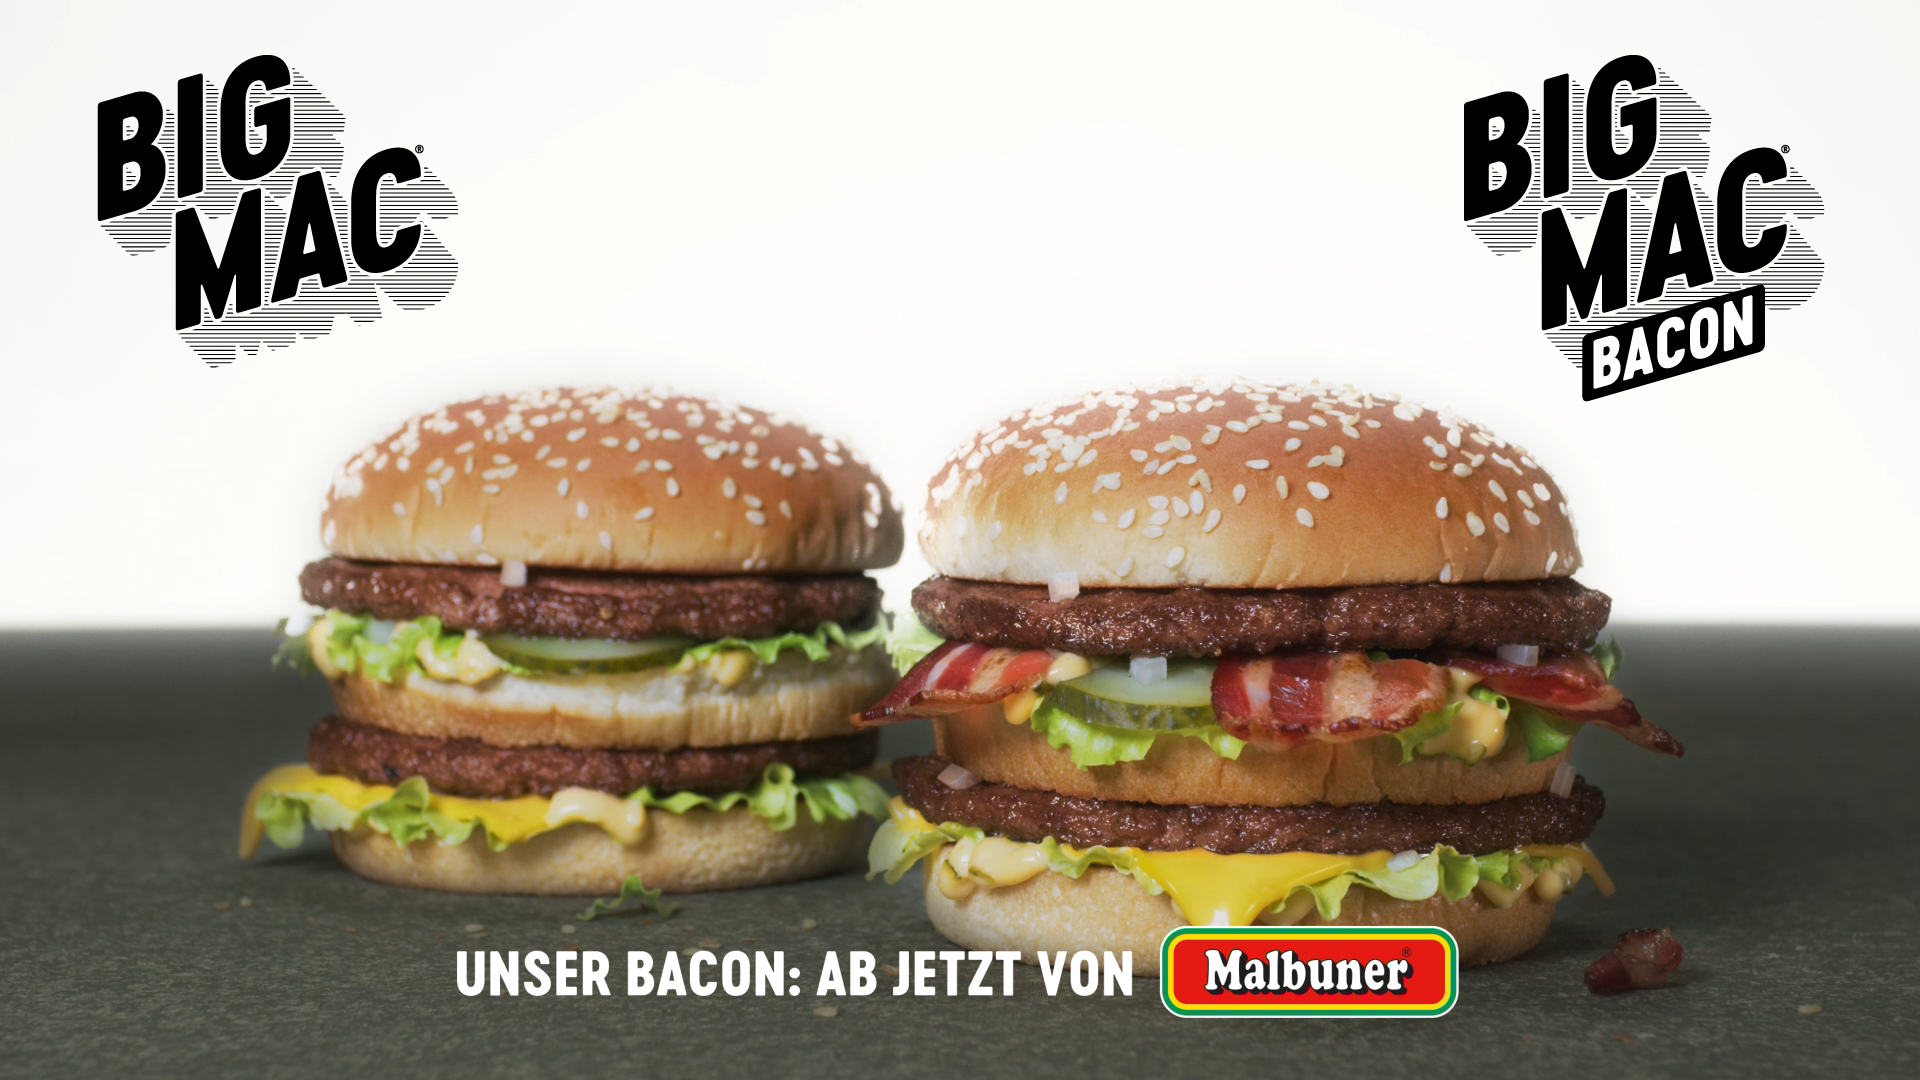 Two McDonald's BigMac Burgers next to each other, one with Malbuner bacon